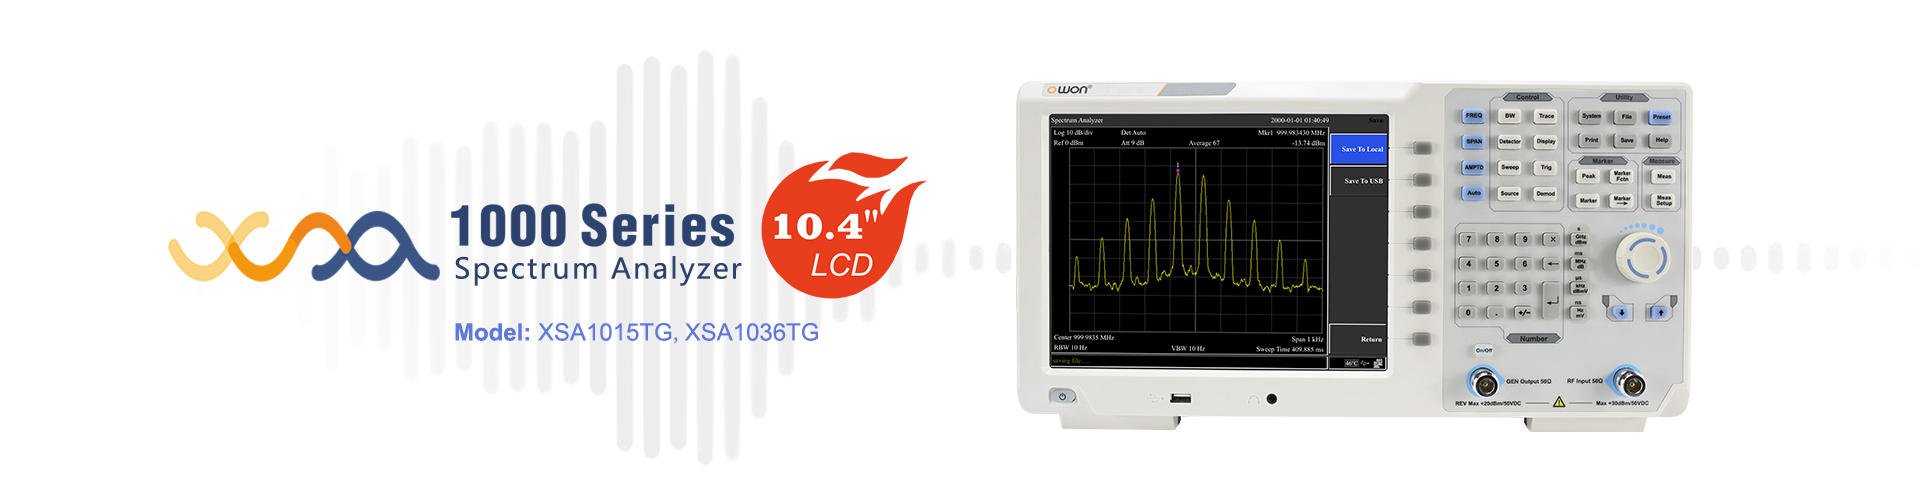 OWON XSA1000 Series Spectrum Analyzer with 10.4 inches display